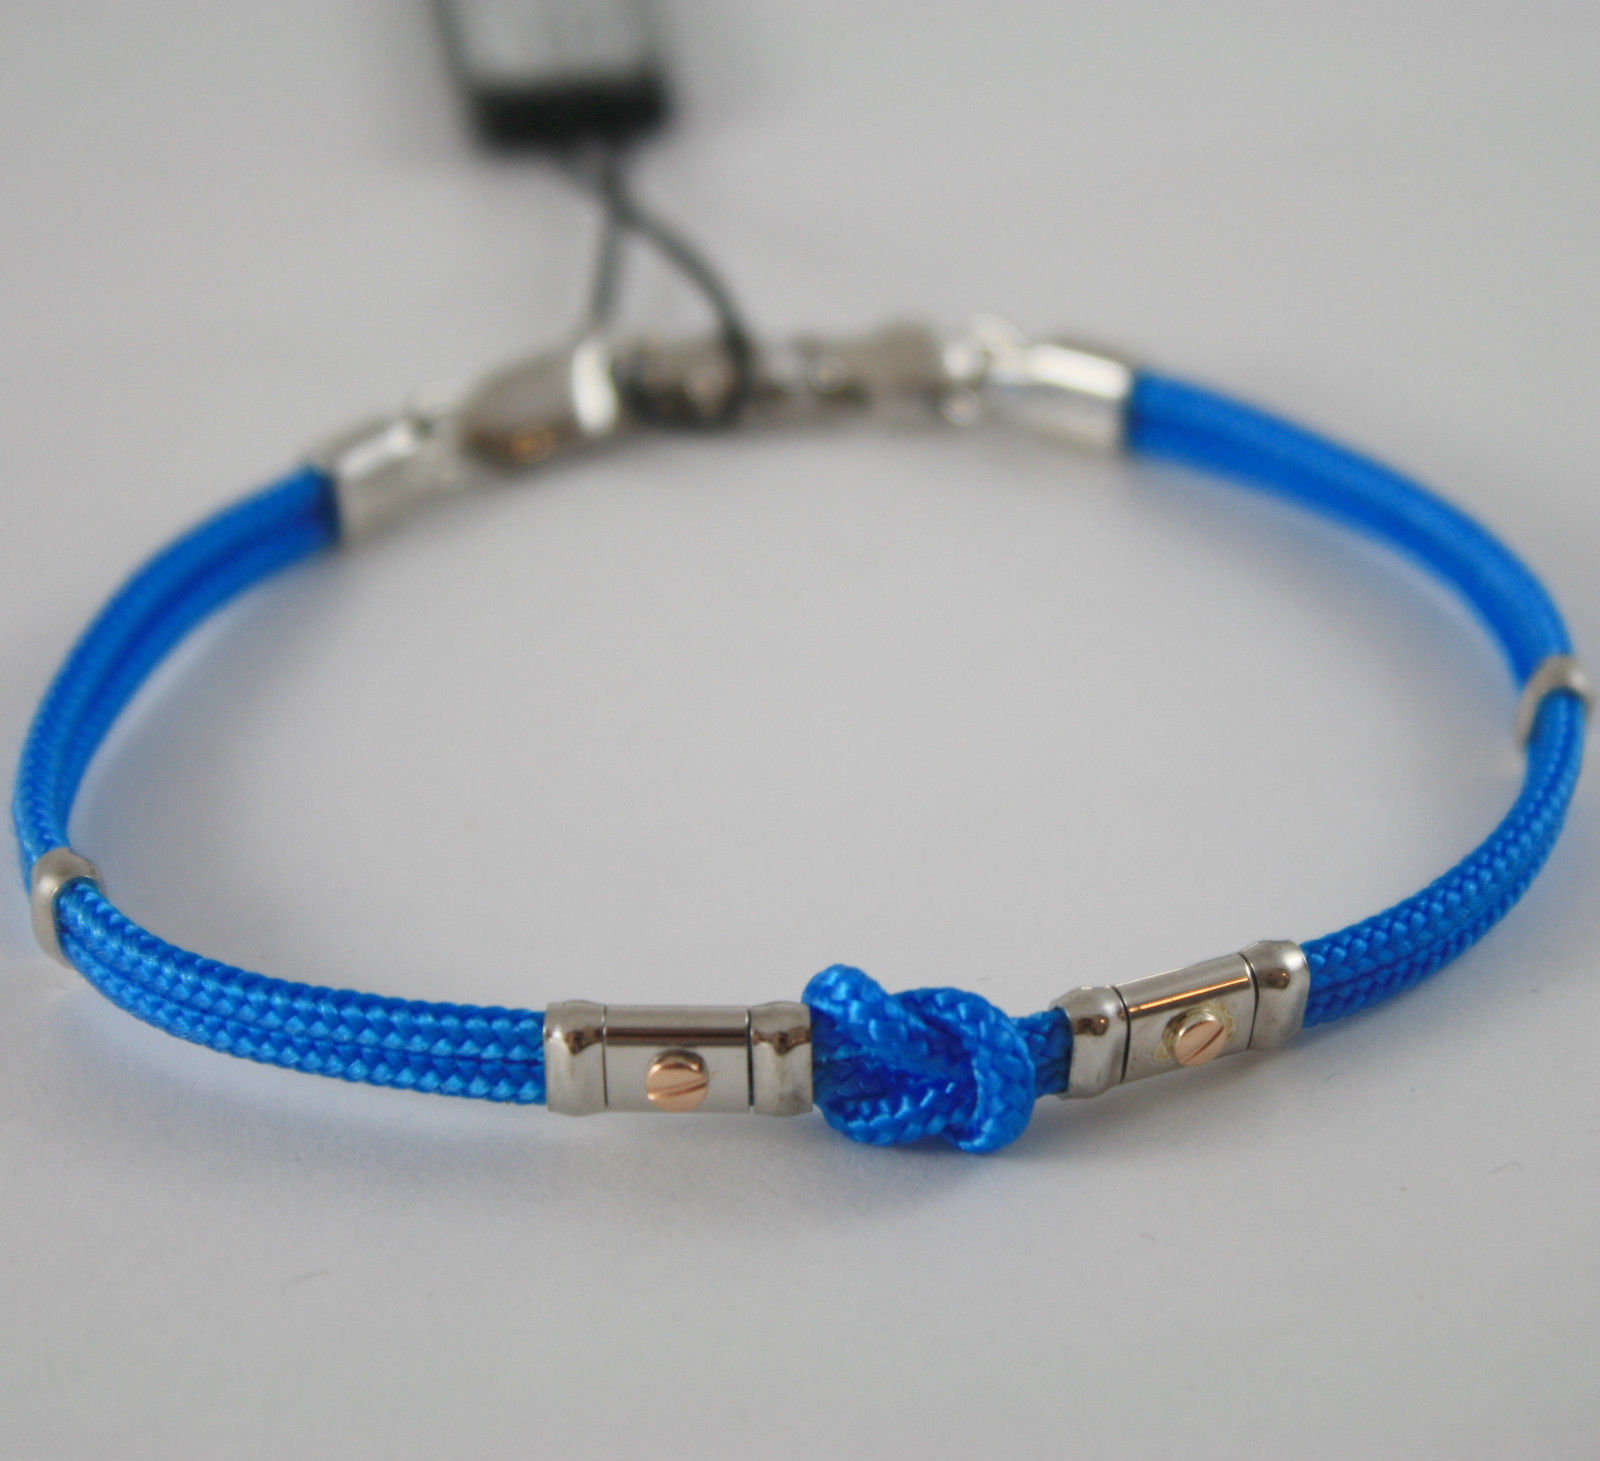 18K ROSE GOLD AND 925 SILVER BRACELET BLUE NAUTICAL ROPE BY ZANCAN MADE IN ITALY